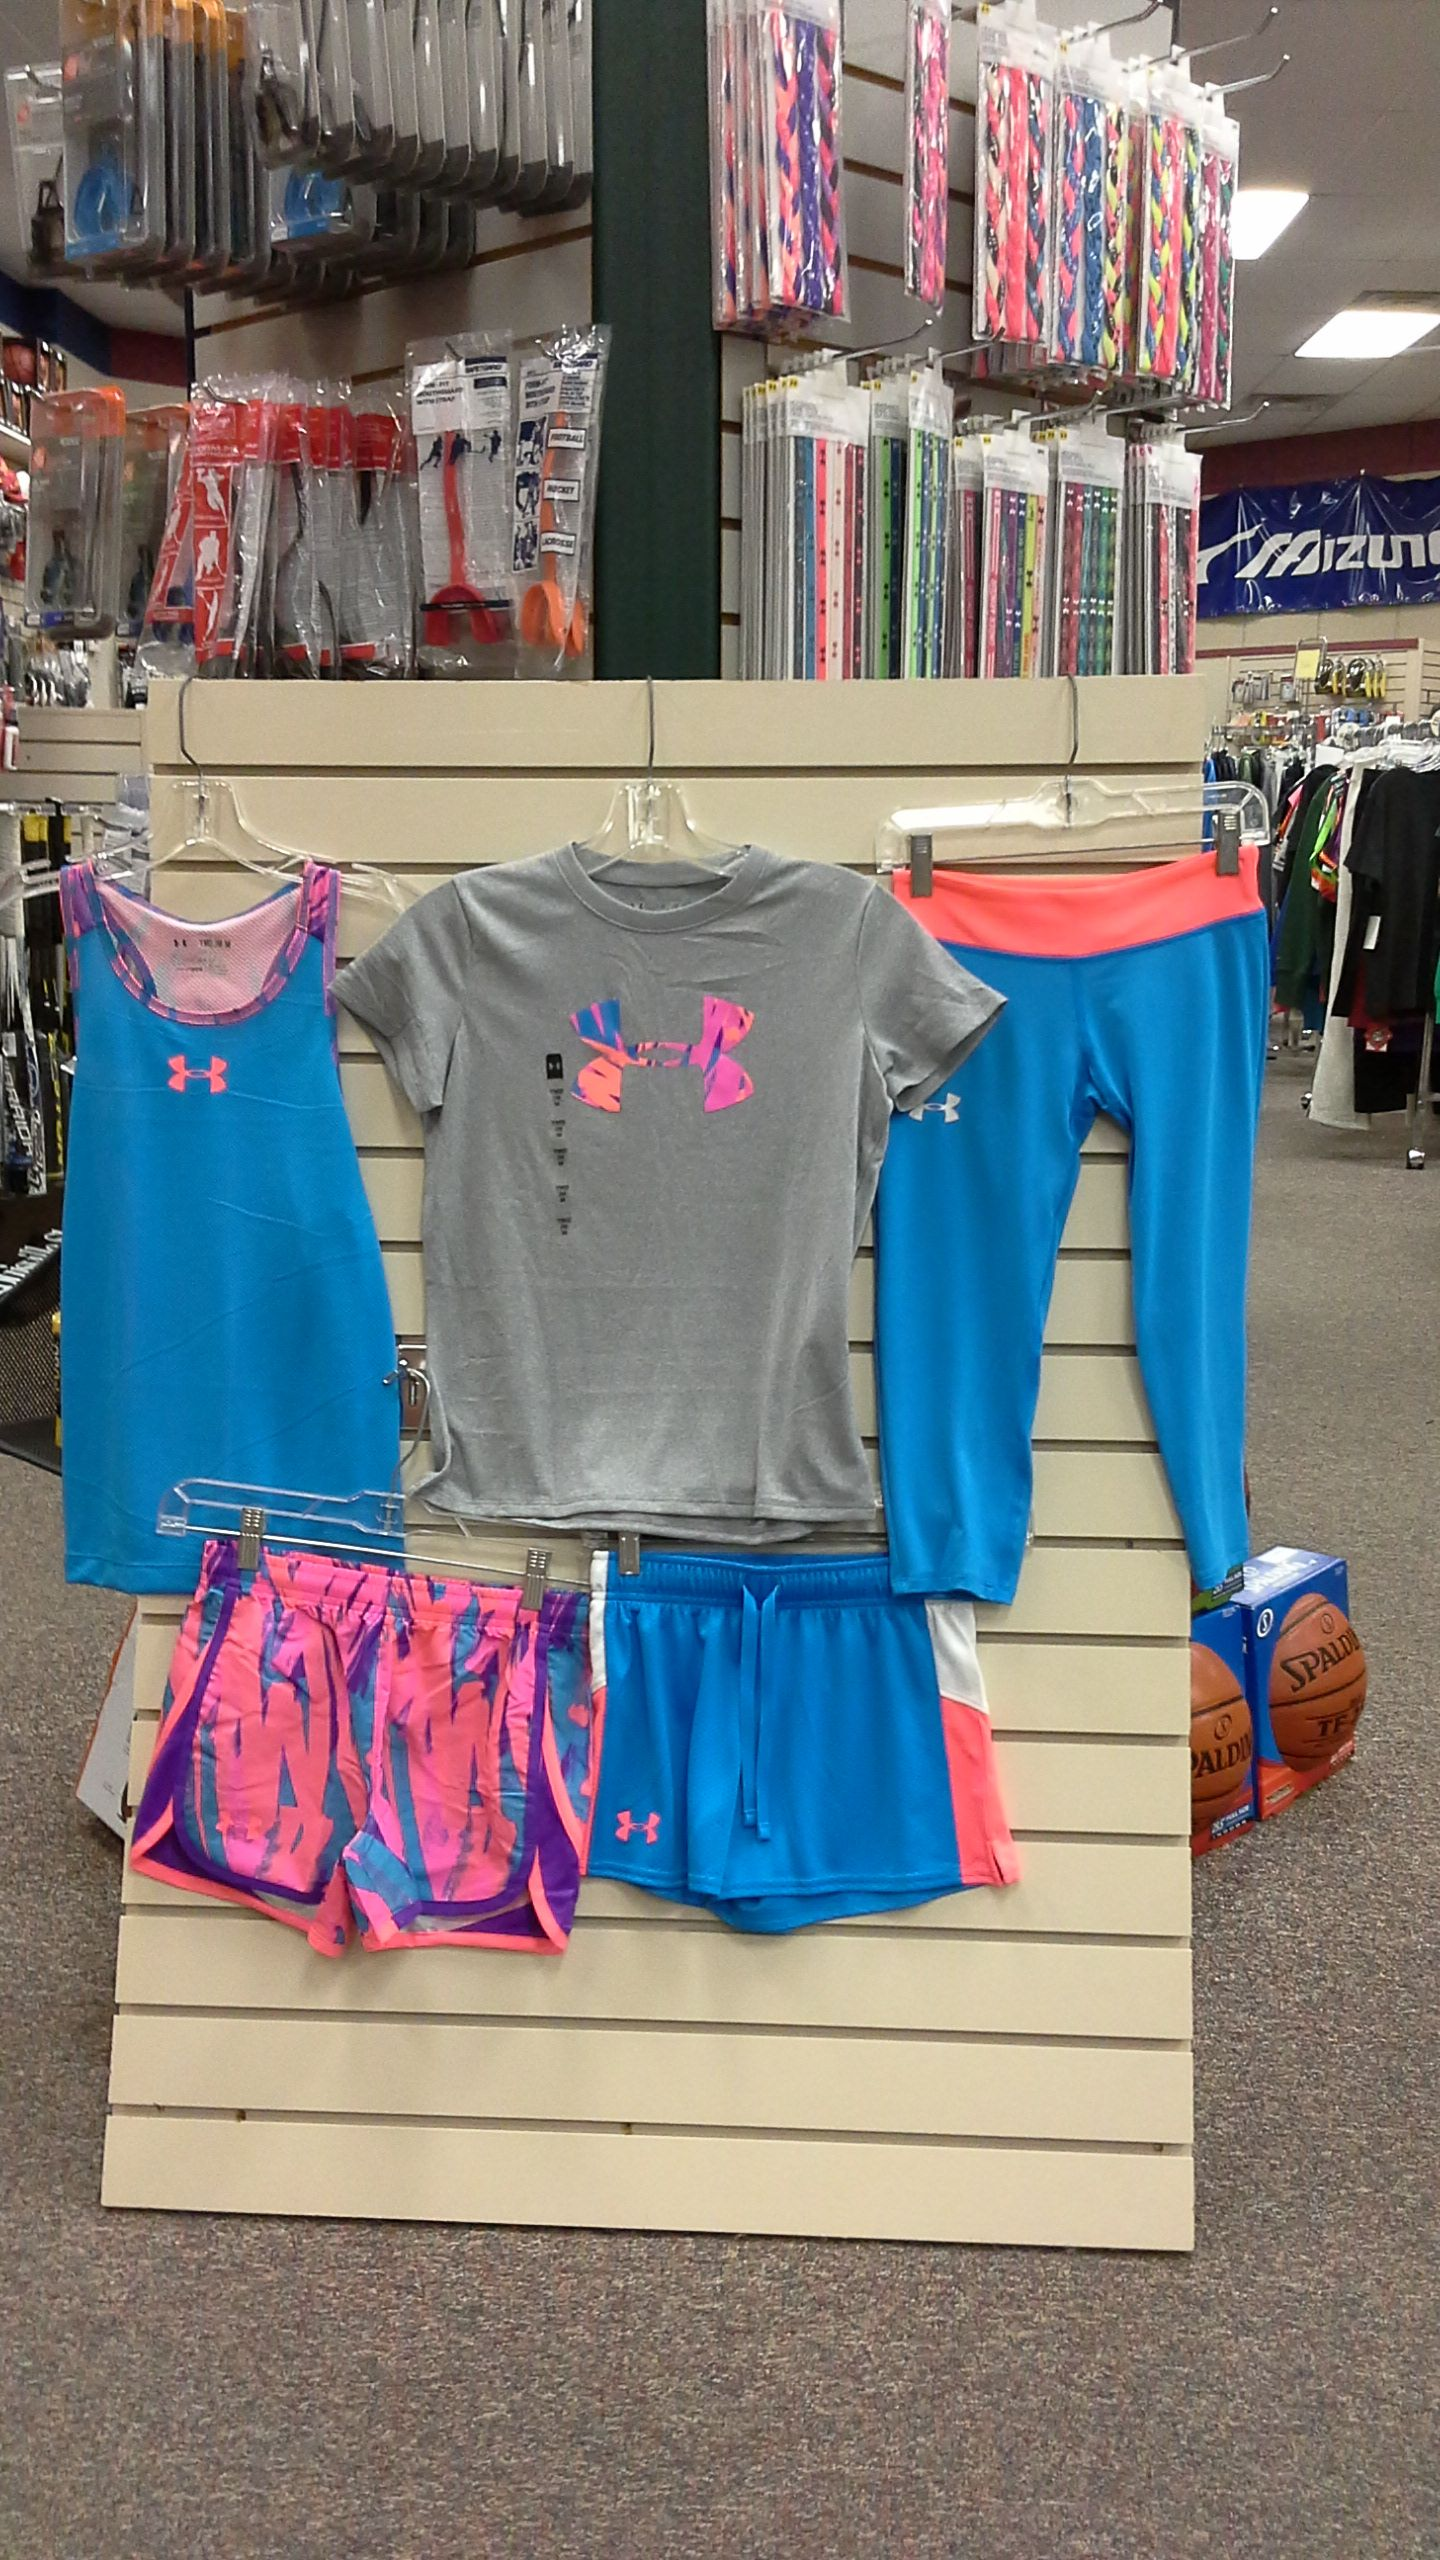 pick up classcic speical offer Youth girls' Under Armour clothing, girls' blue Under Amour ...